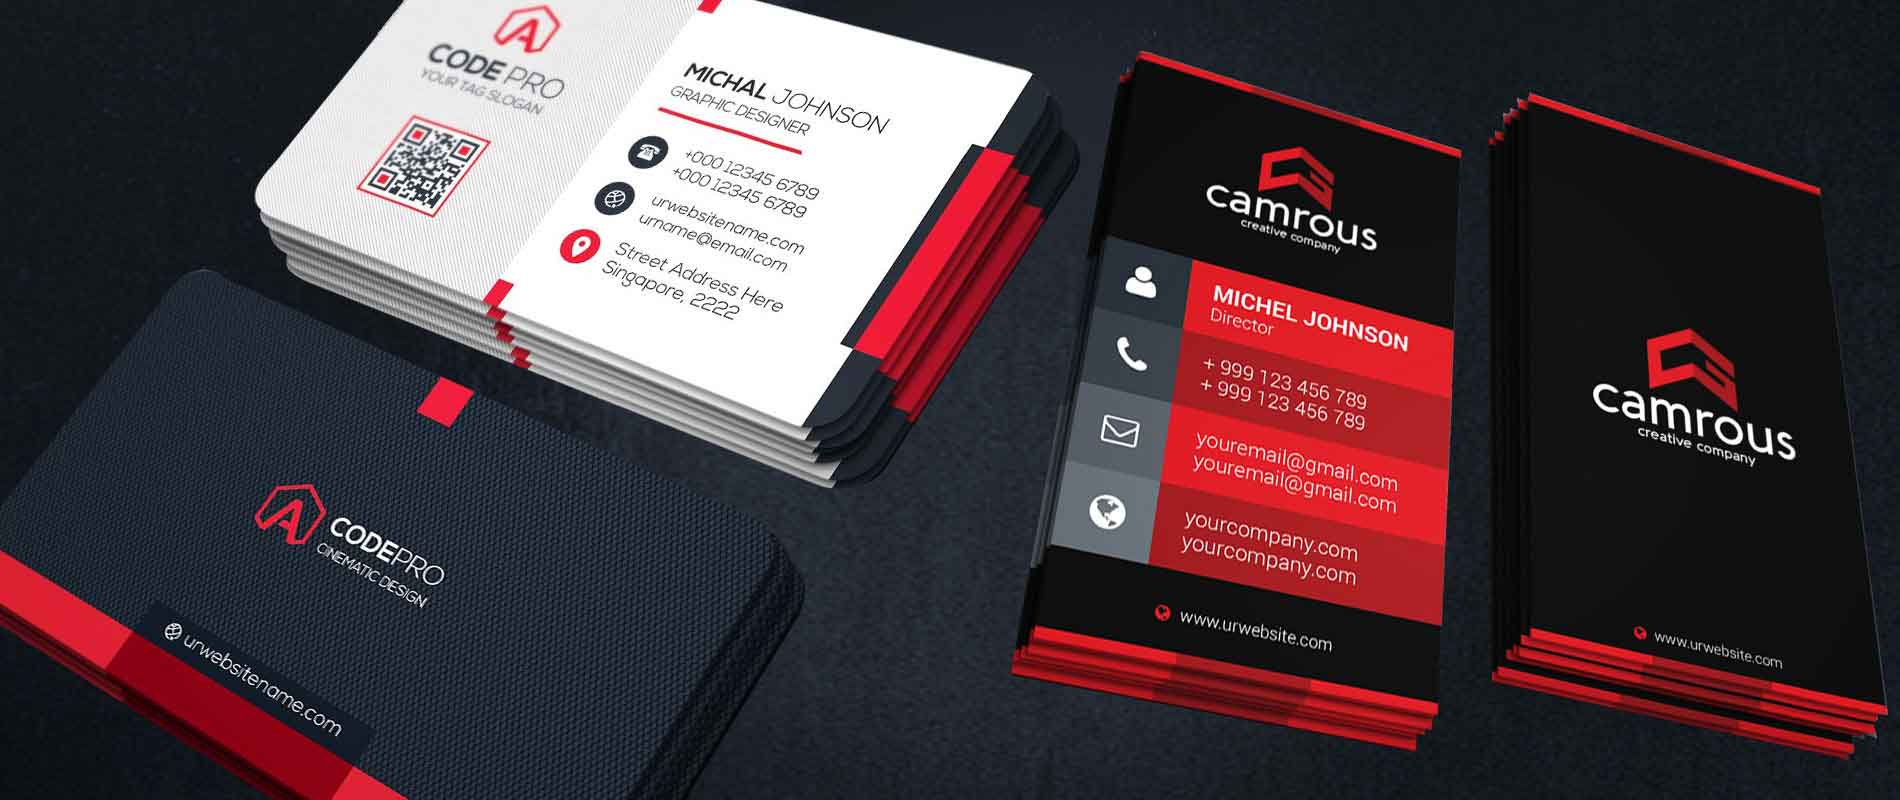 Business Cards Design And Printing 2020 Creatives Graphic Design